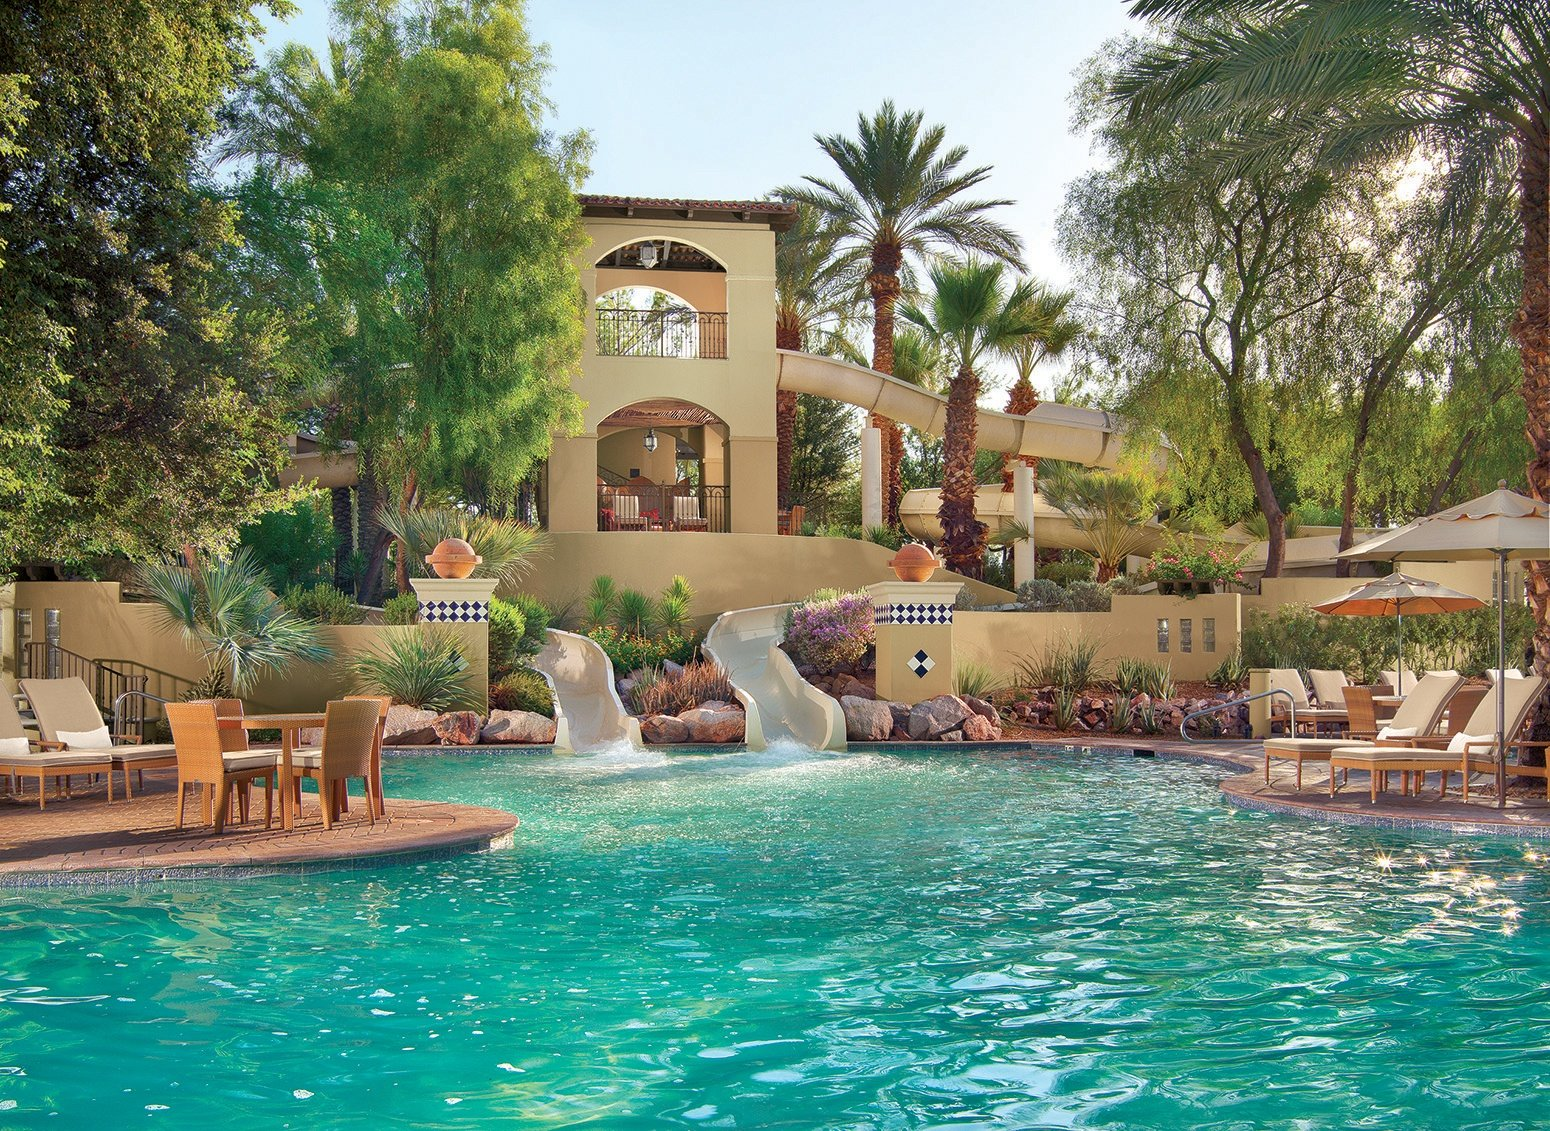 Waterslides at the Fairmont Scottsdale Princess